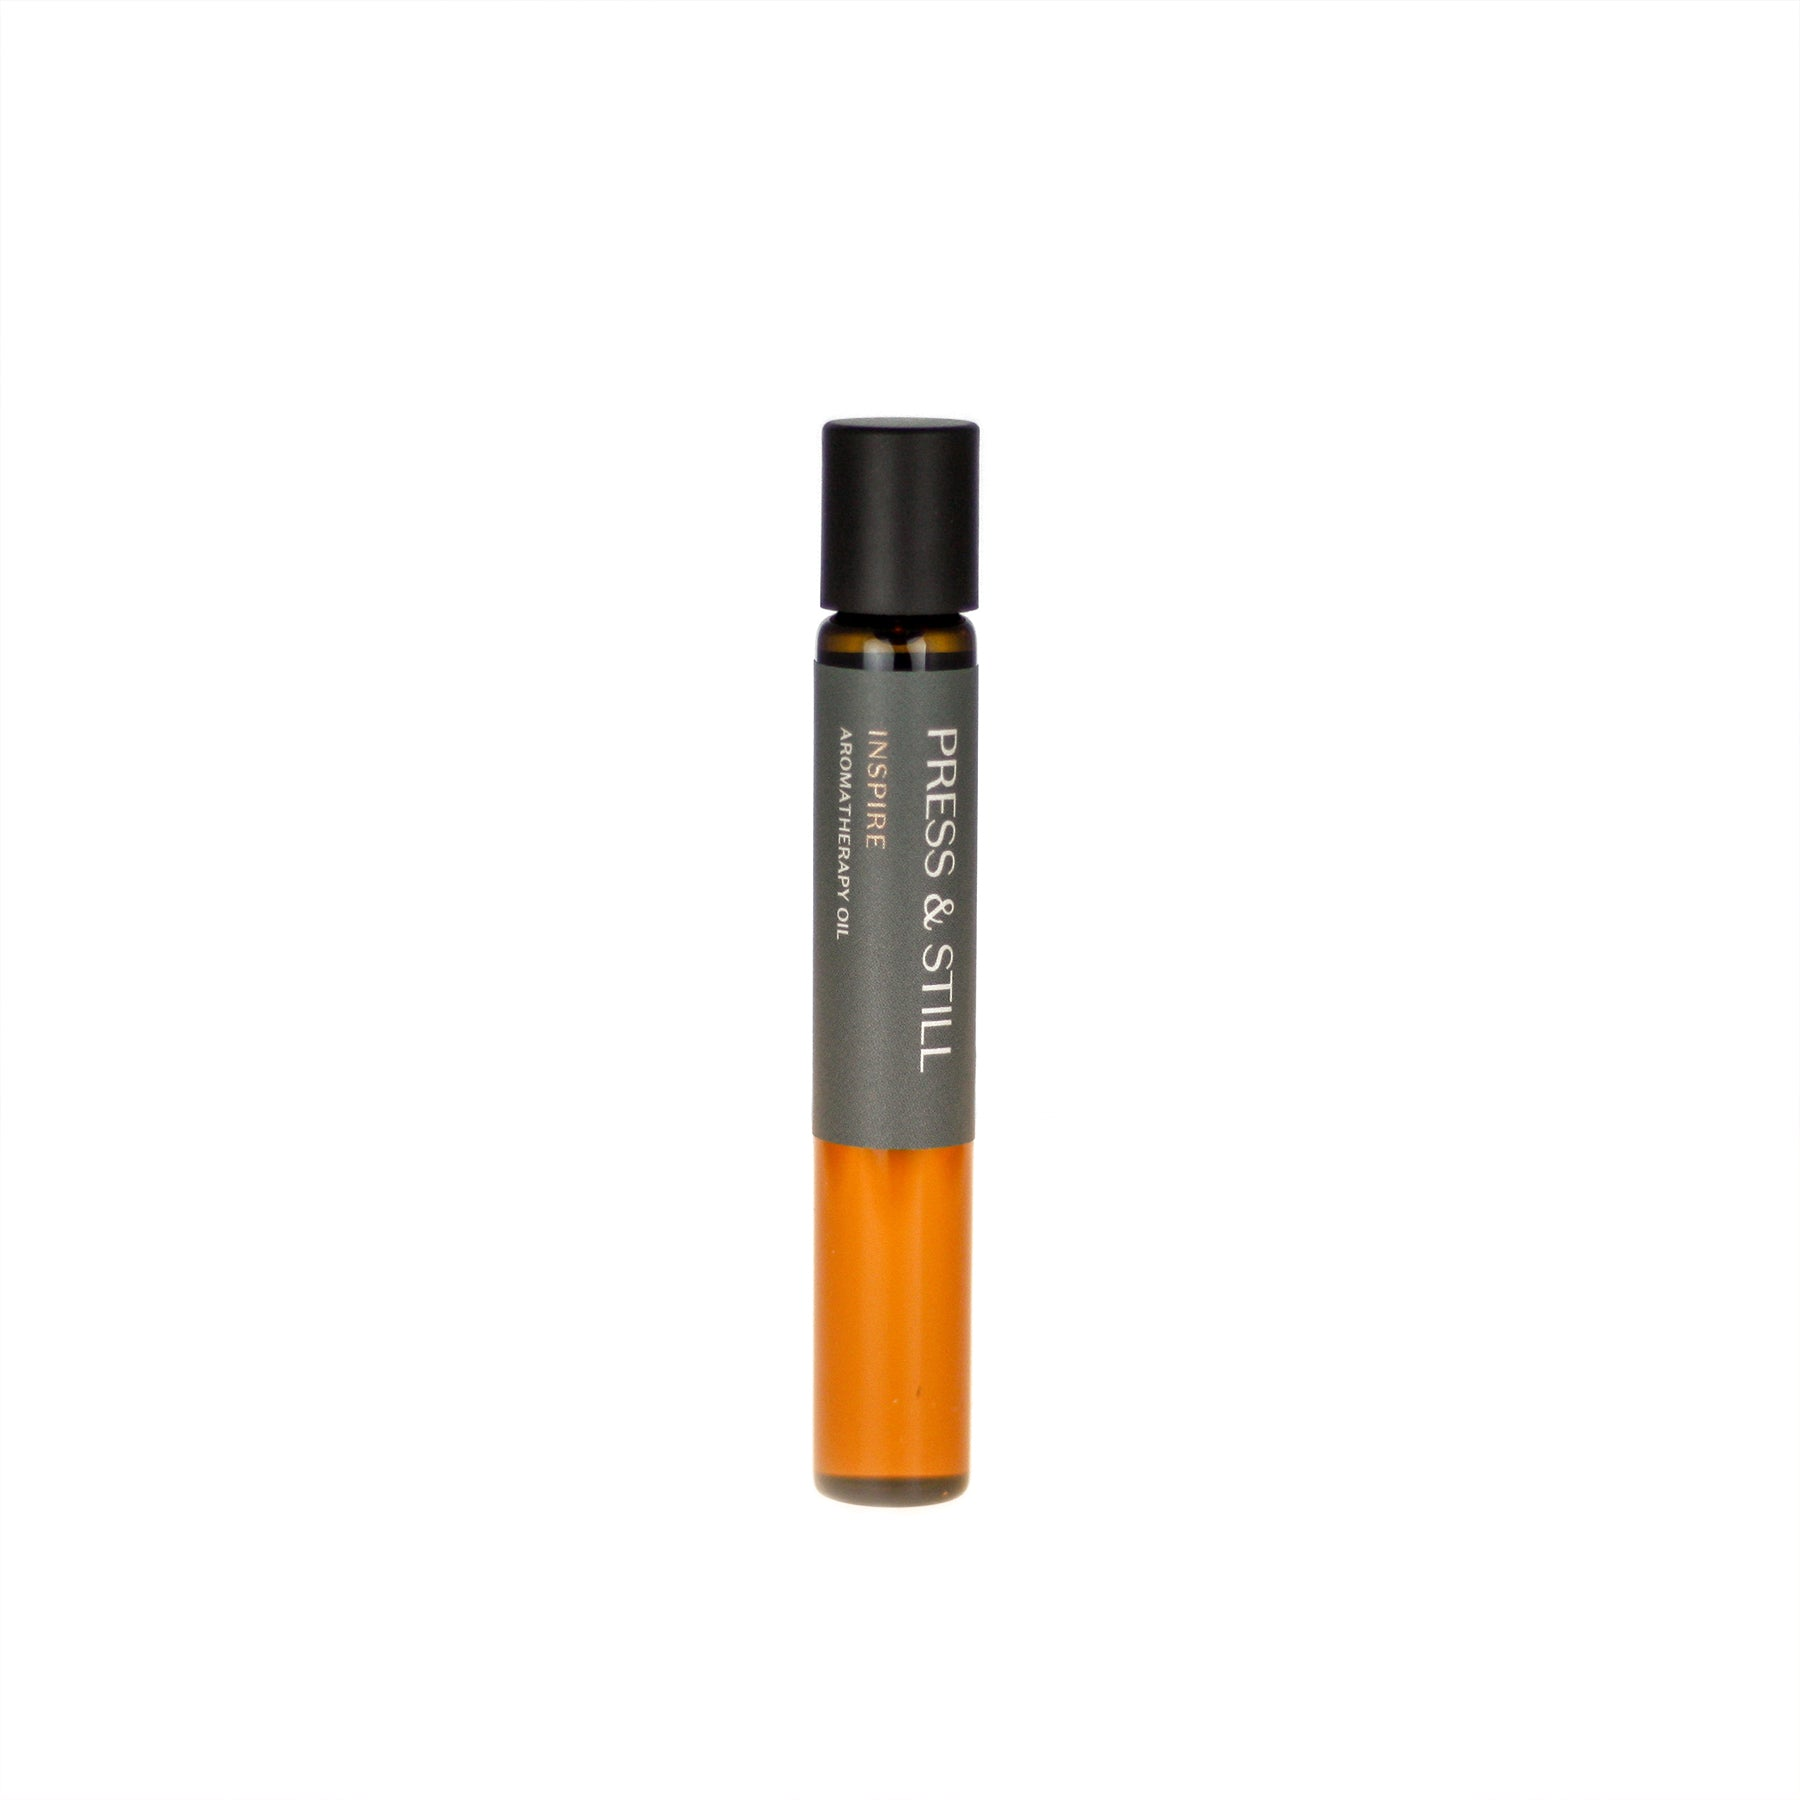 Inspire aromatherapy oil (0.33 fl oz/10 ml). Organic jojoba exquisitely scented with lime, petitgrain, jasmine and rose essential oils and extracts.